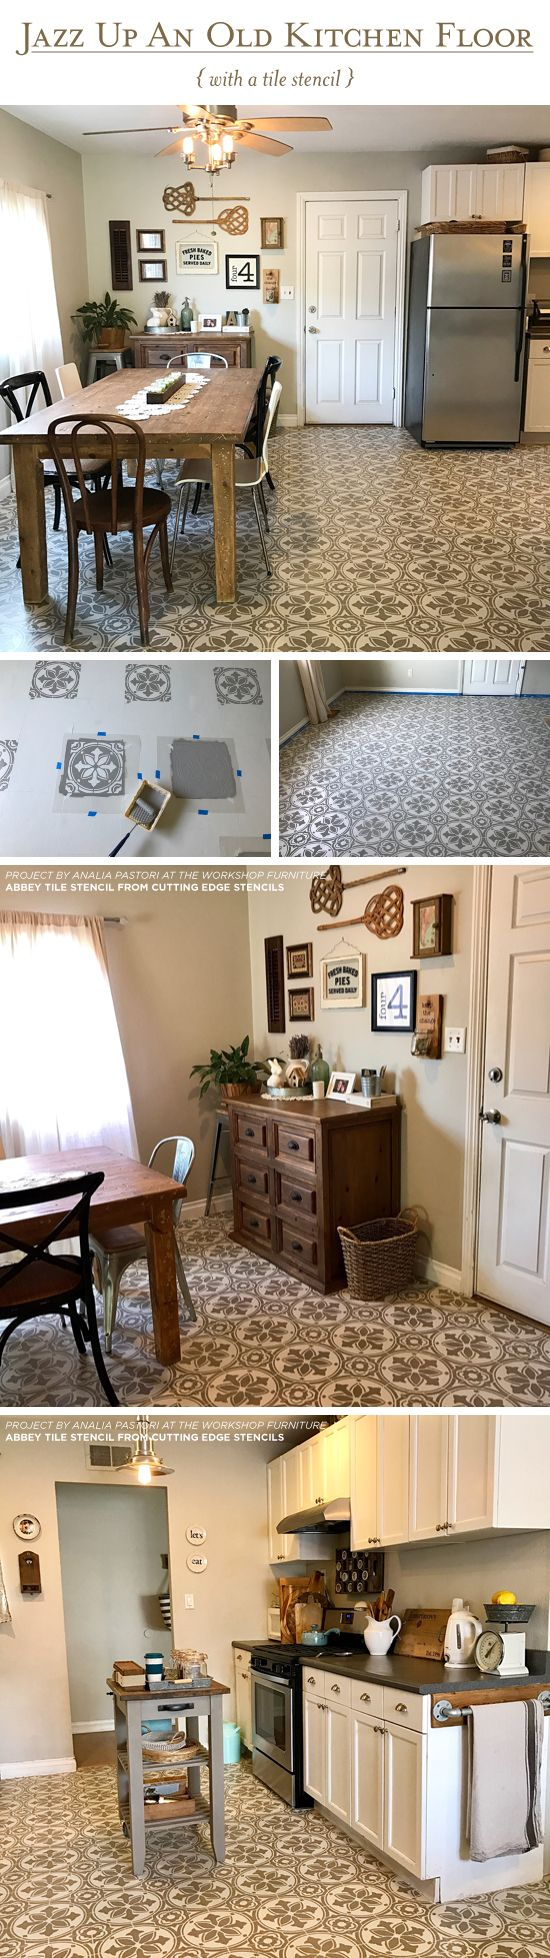 Floor Linoleum For Kitchens 25 Best Ideas About Linoleum Kitchen Floors On Pinterest Paint